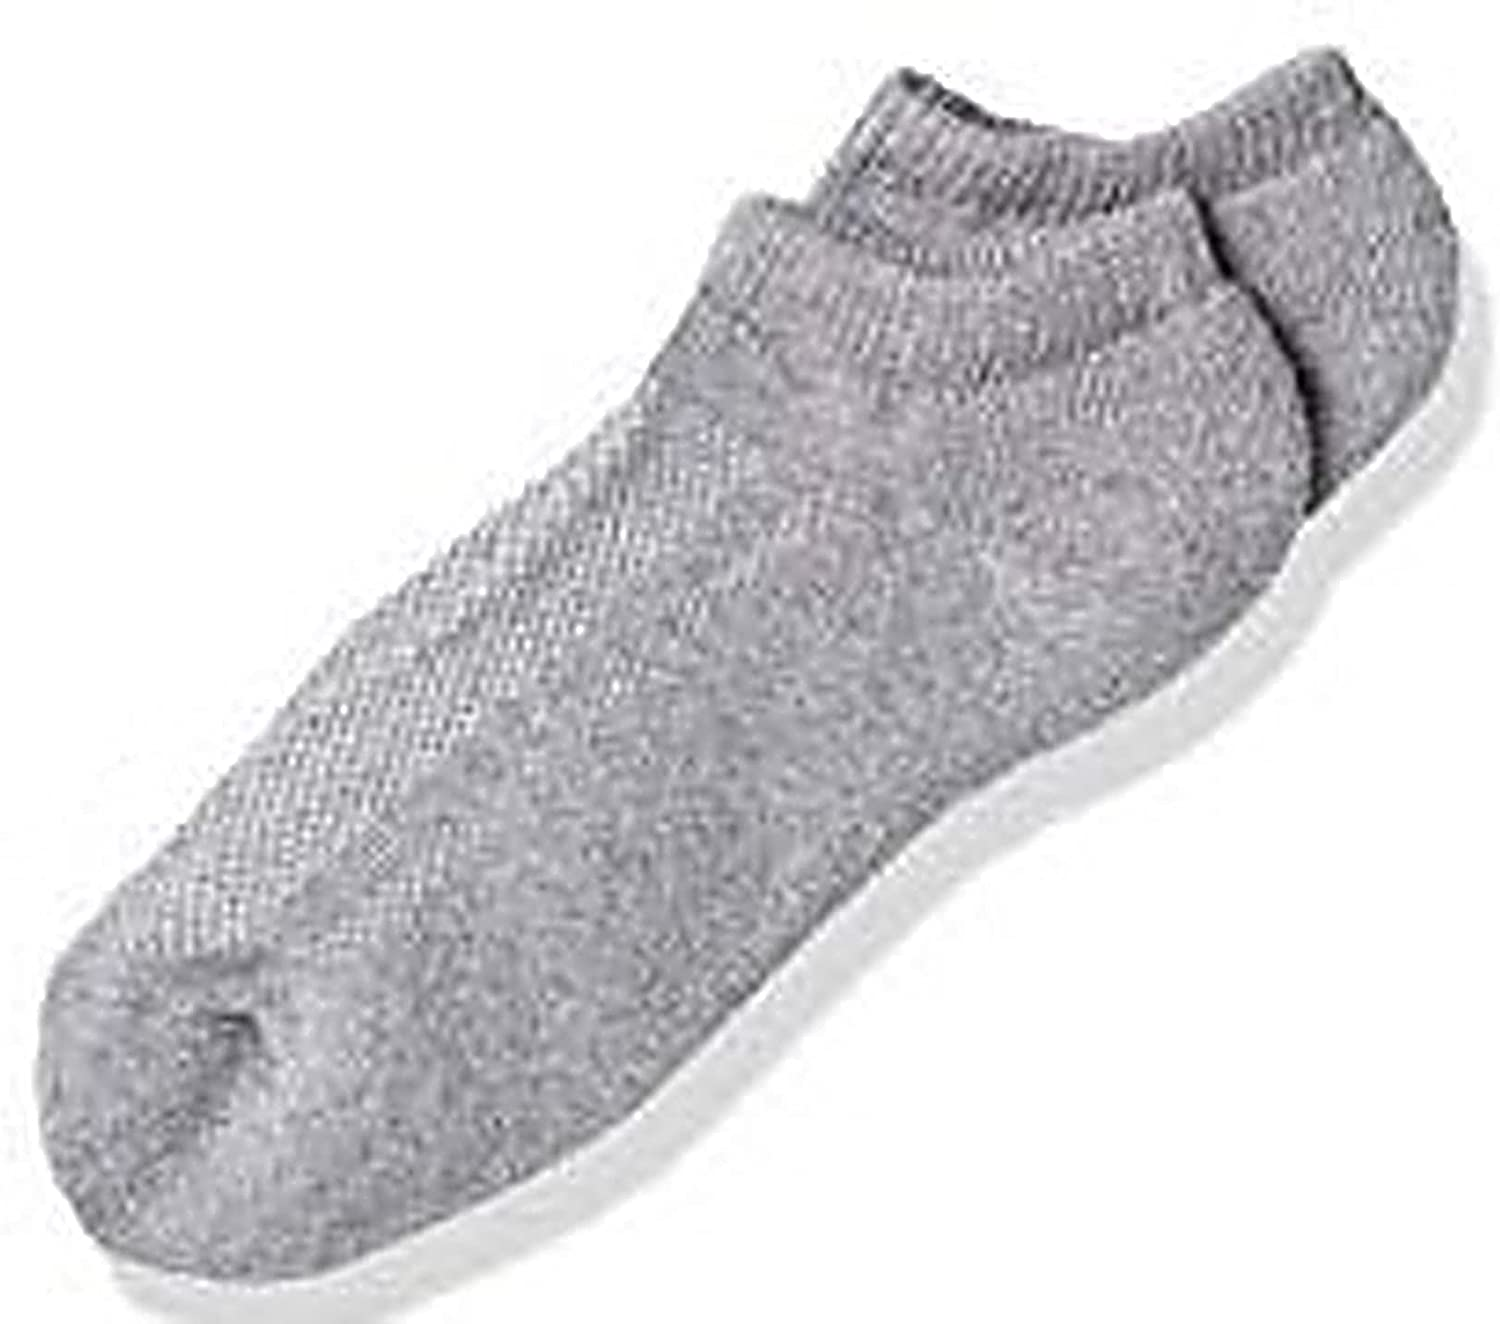 Fruit Of The Loom Boys Breathable 3 Pack No Show Socks, 3-9, Gray Assorted